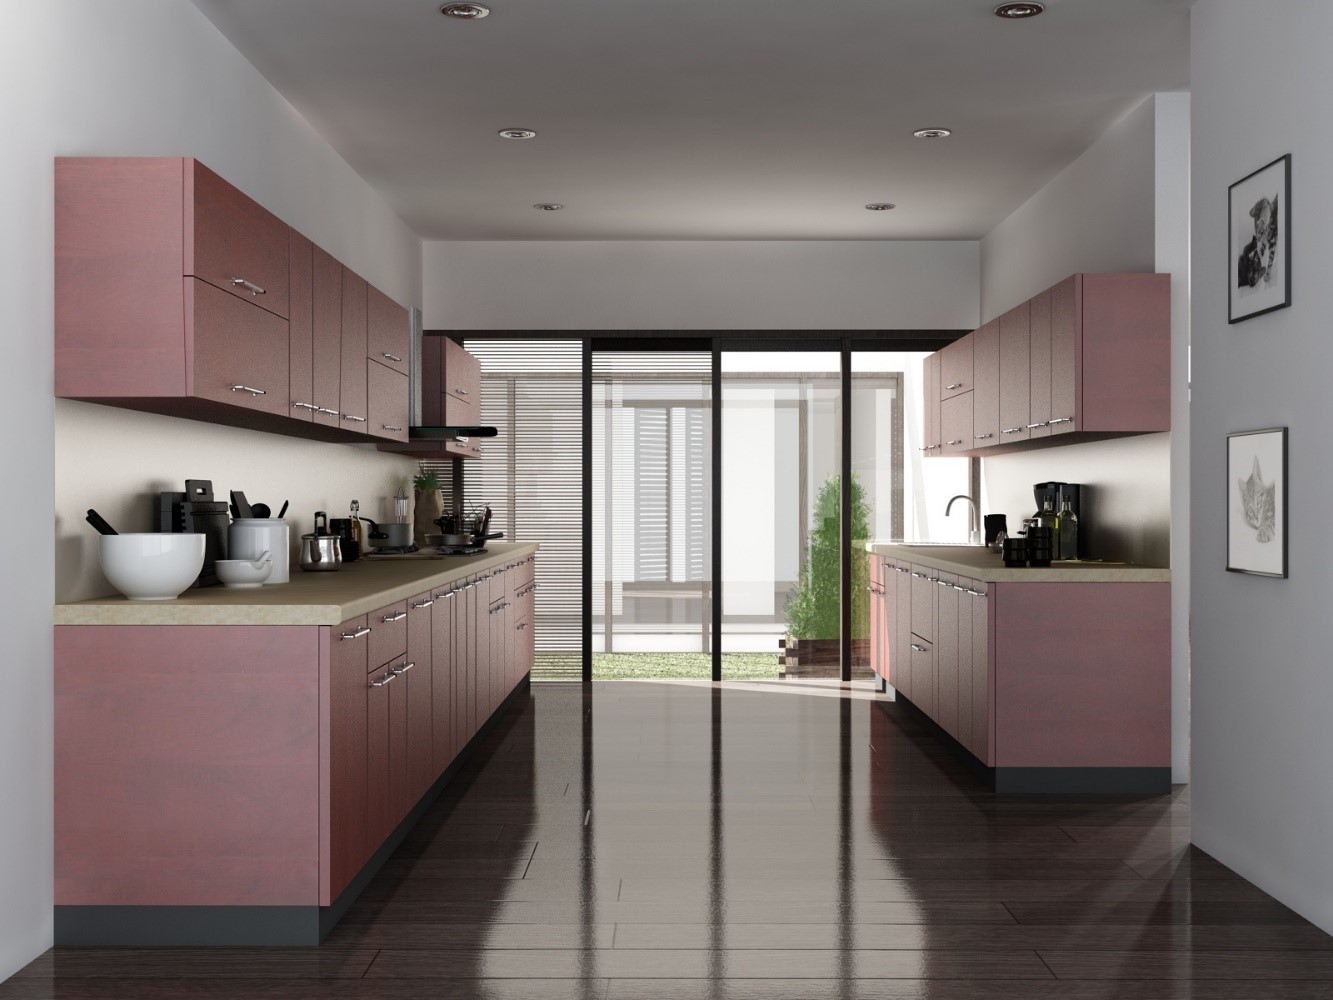 Kitchen Design Style Quiz Types Of Modular Kitchen Advantages And Disadvantages